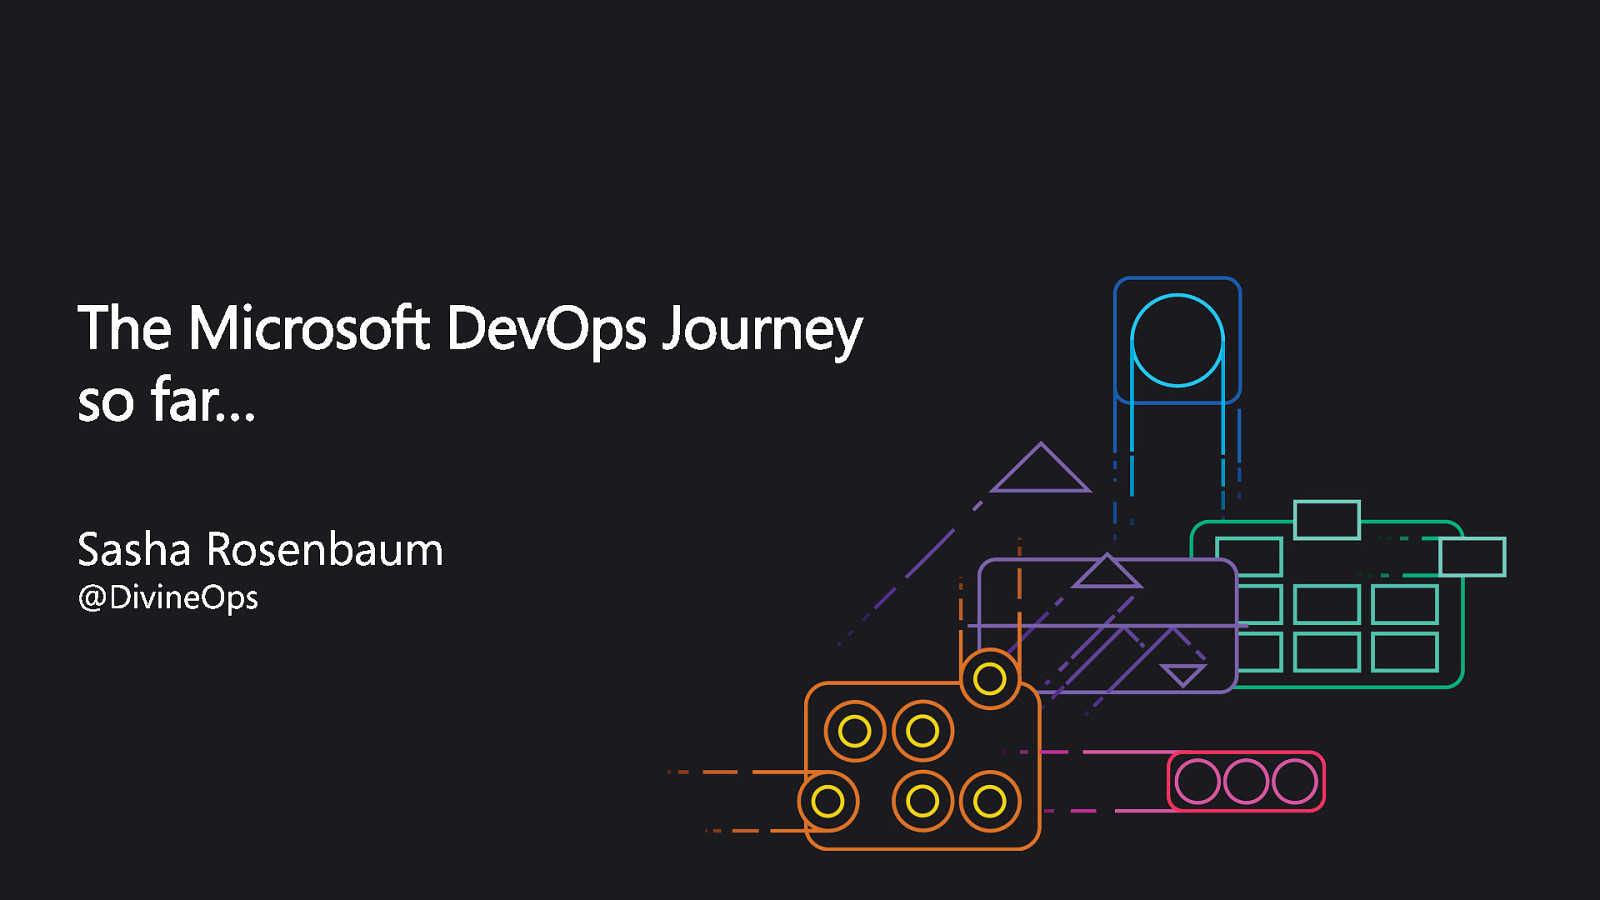 The Microsoft DevOps Journey (so far) - Guadalajara, 2020